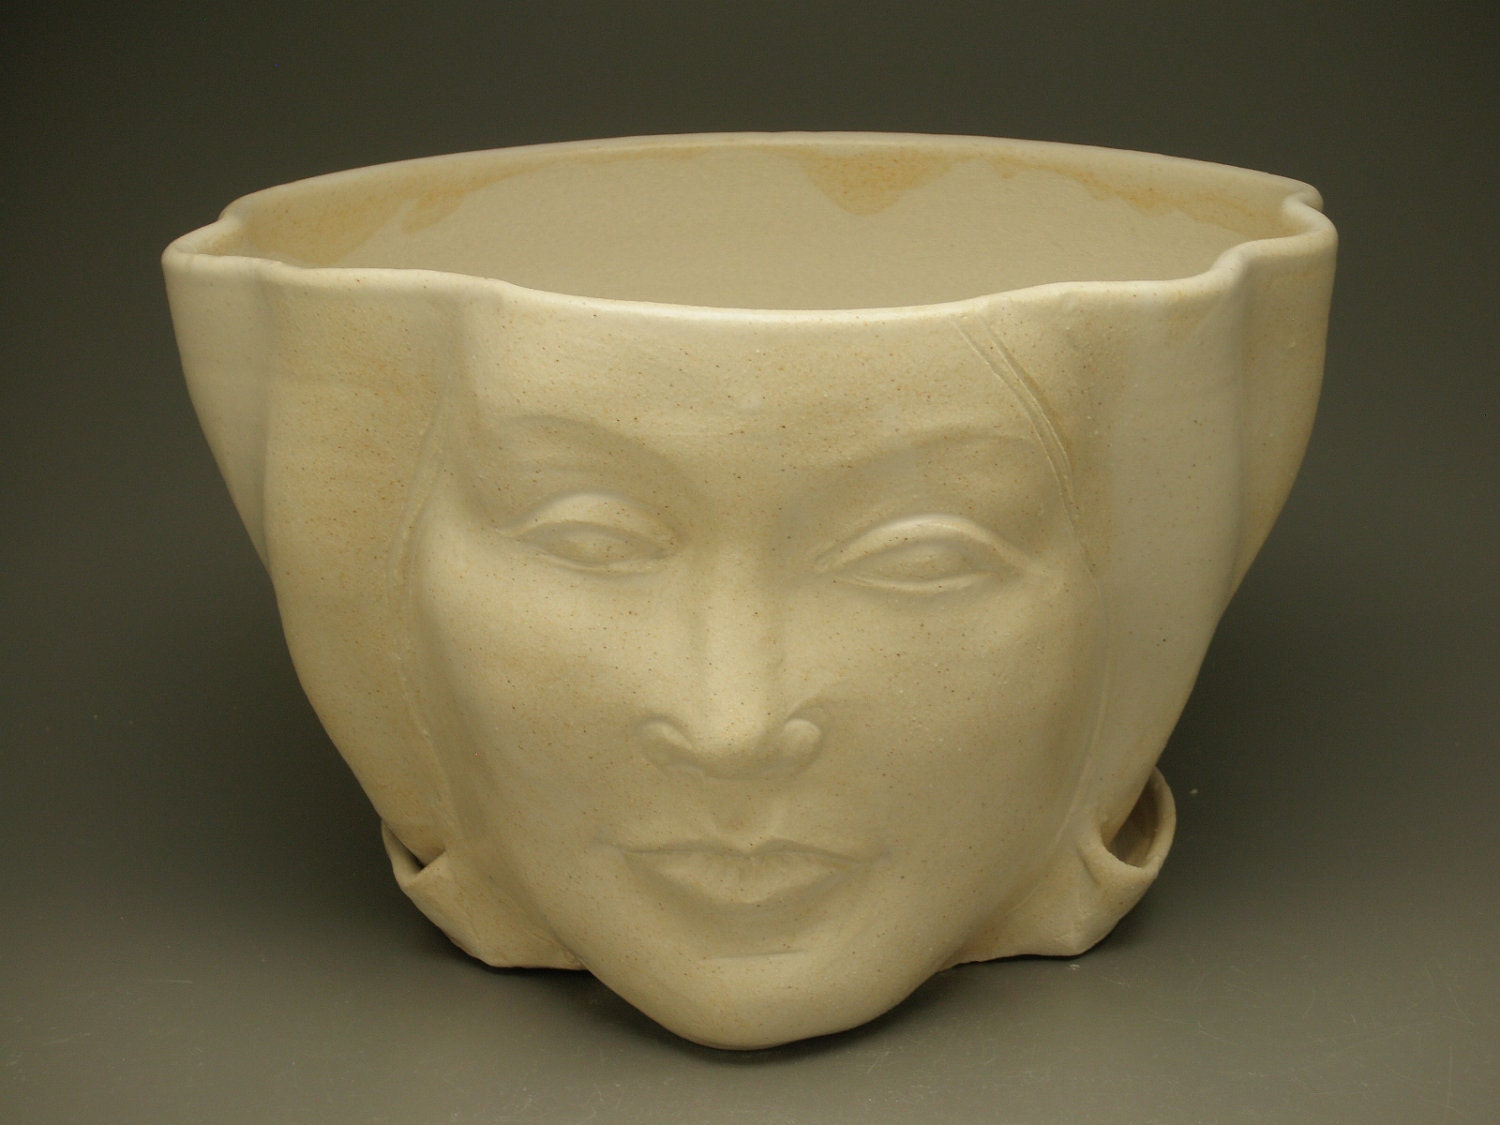 Face Planter Sculpture Flower Pot Head Garden Art With Open